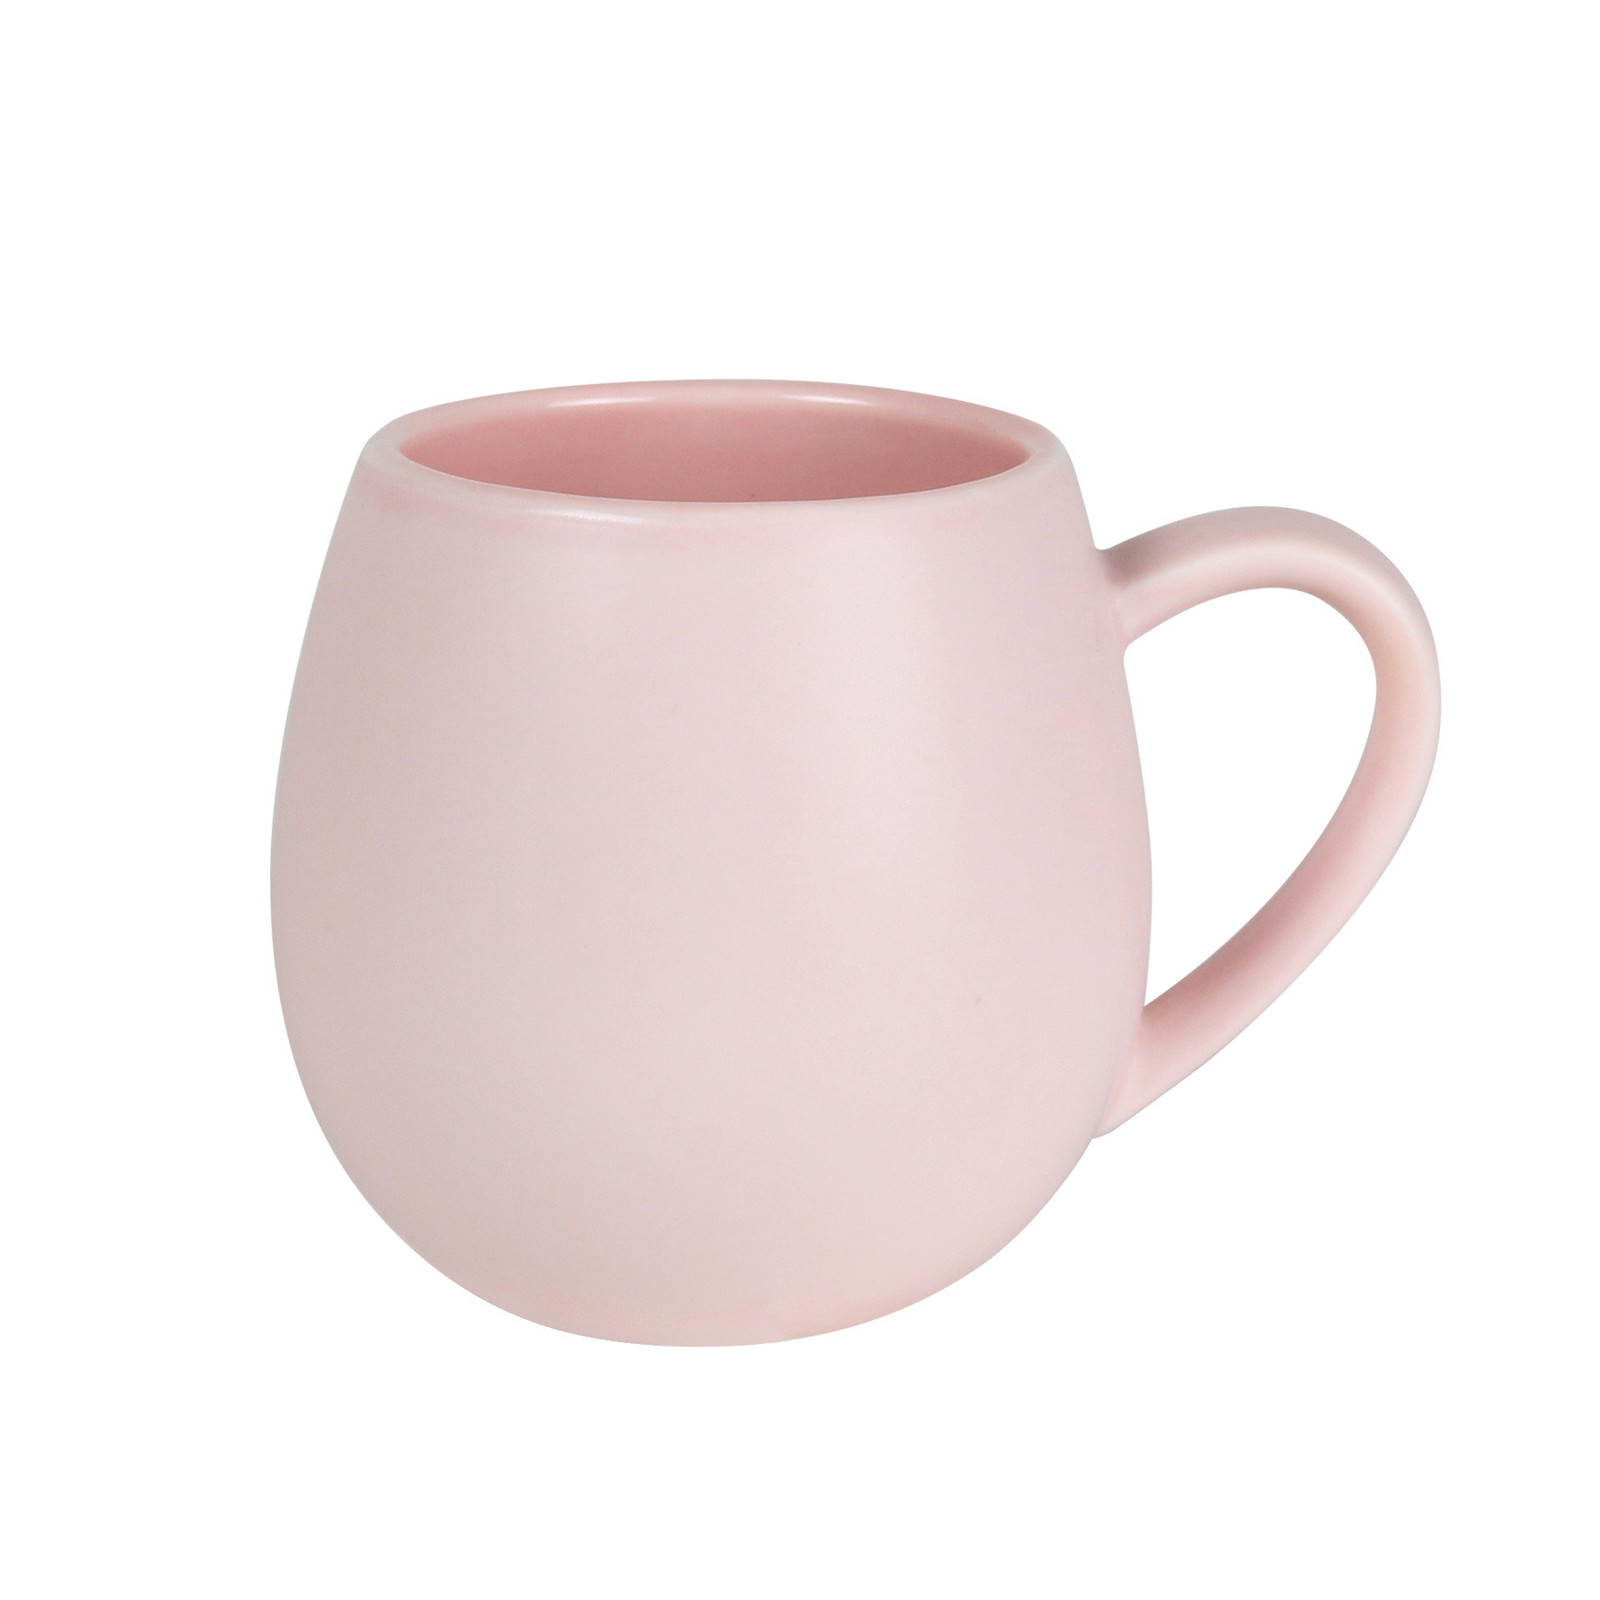 Robert Gordon: Hug Me Mug Set (Pale Pink) image